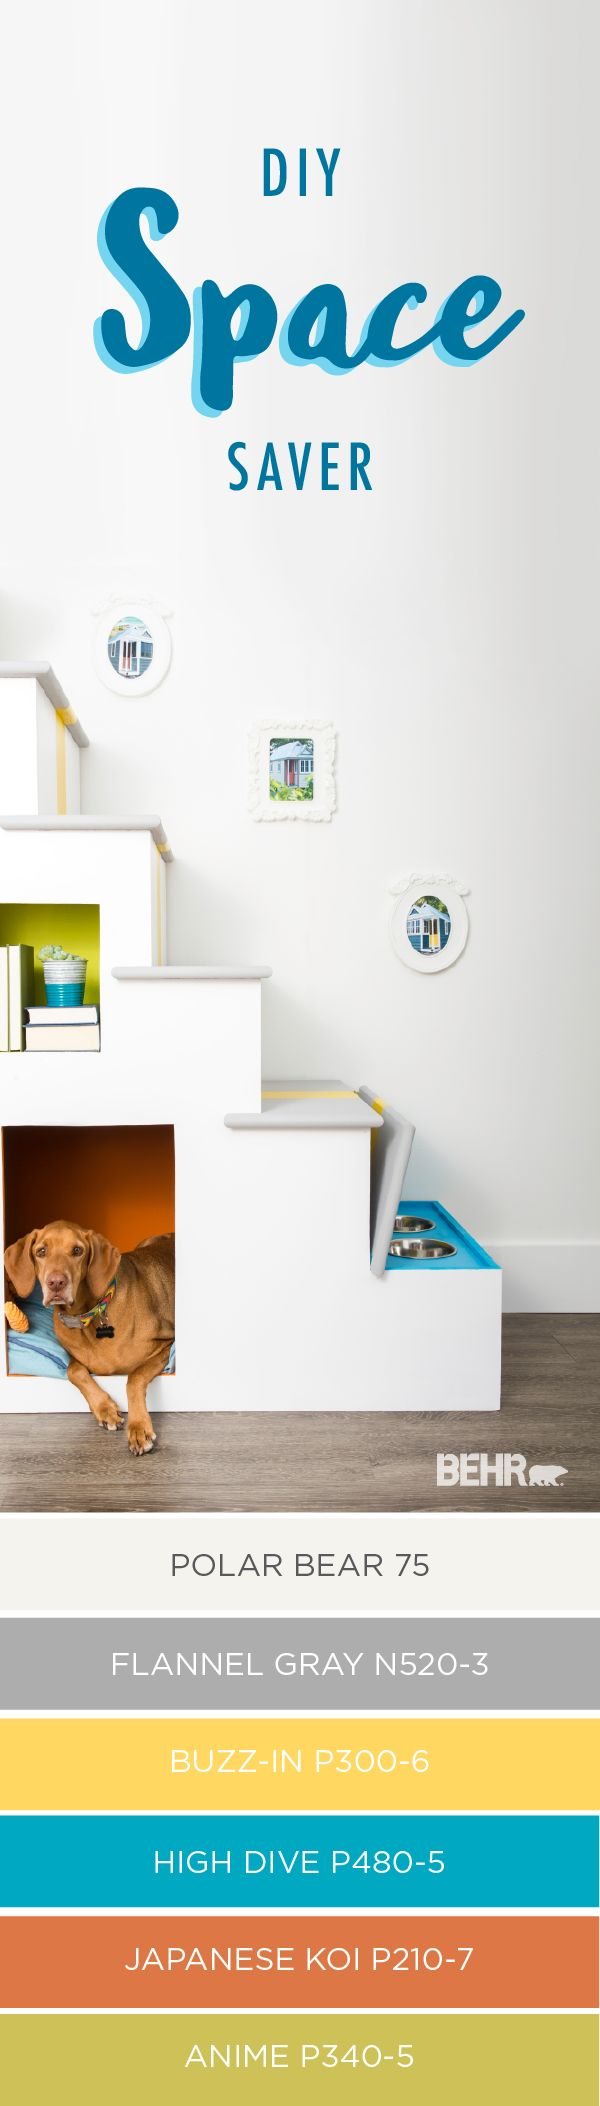 Trying to find extra storage space in a small apartment can be a challenge. Luckily, BEHR has just the solution for you. These DIY small space stairs are practical and stylish, with lots of bright colors to make your home fit your style. Plus, with a feeding station and room for a pet bed, your furry family members will love it too.